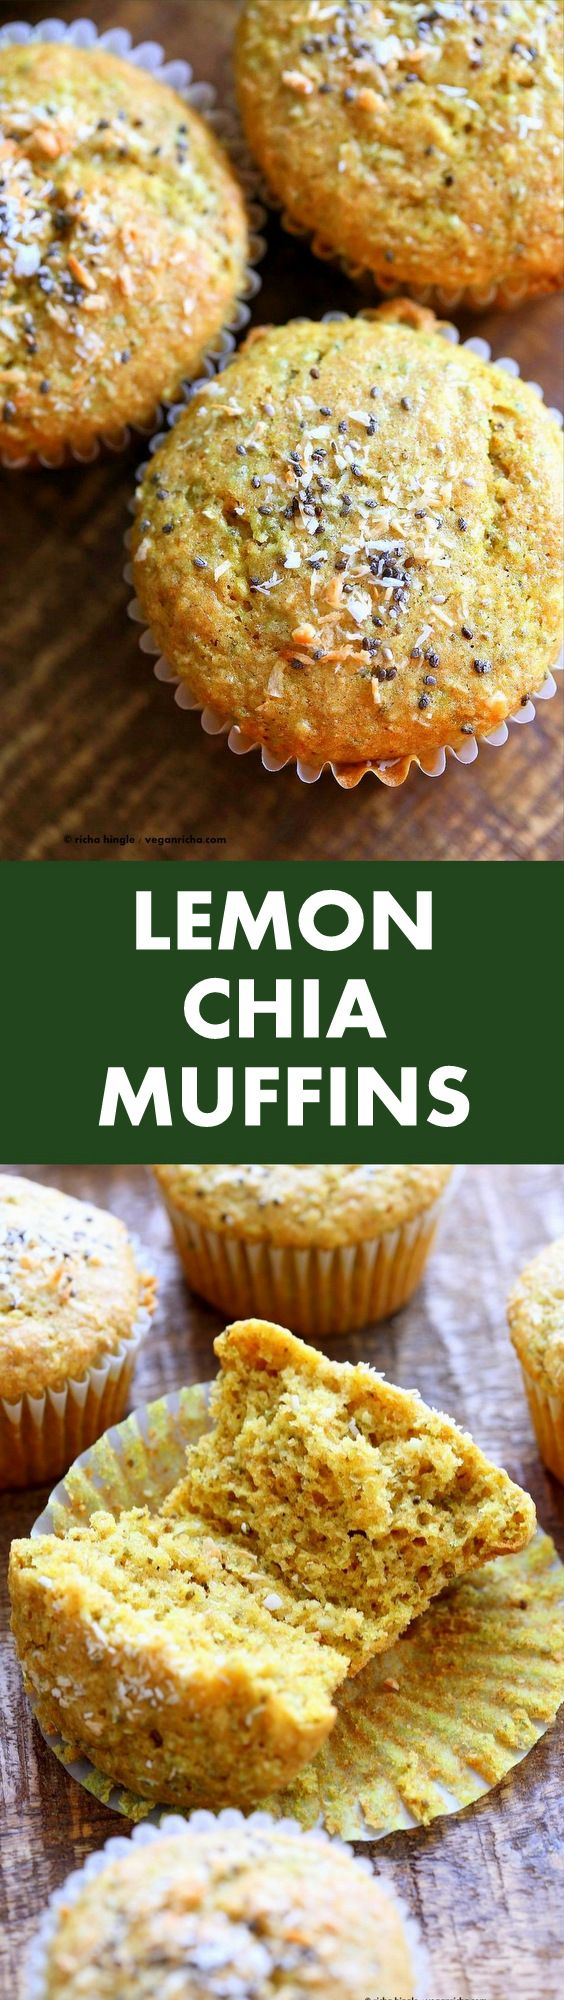 Lemon Coconut Chia Muffins